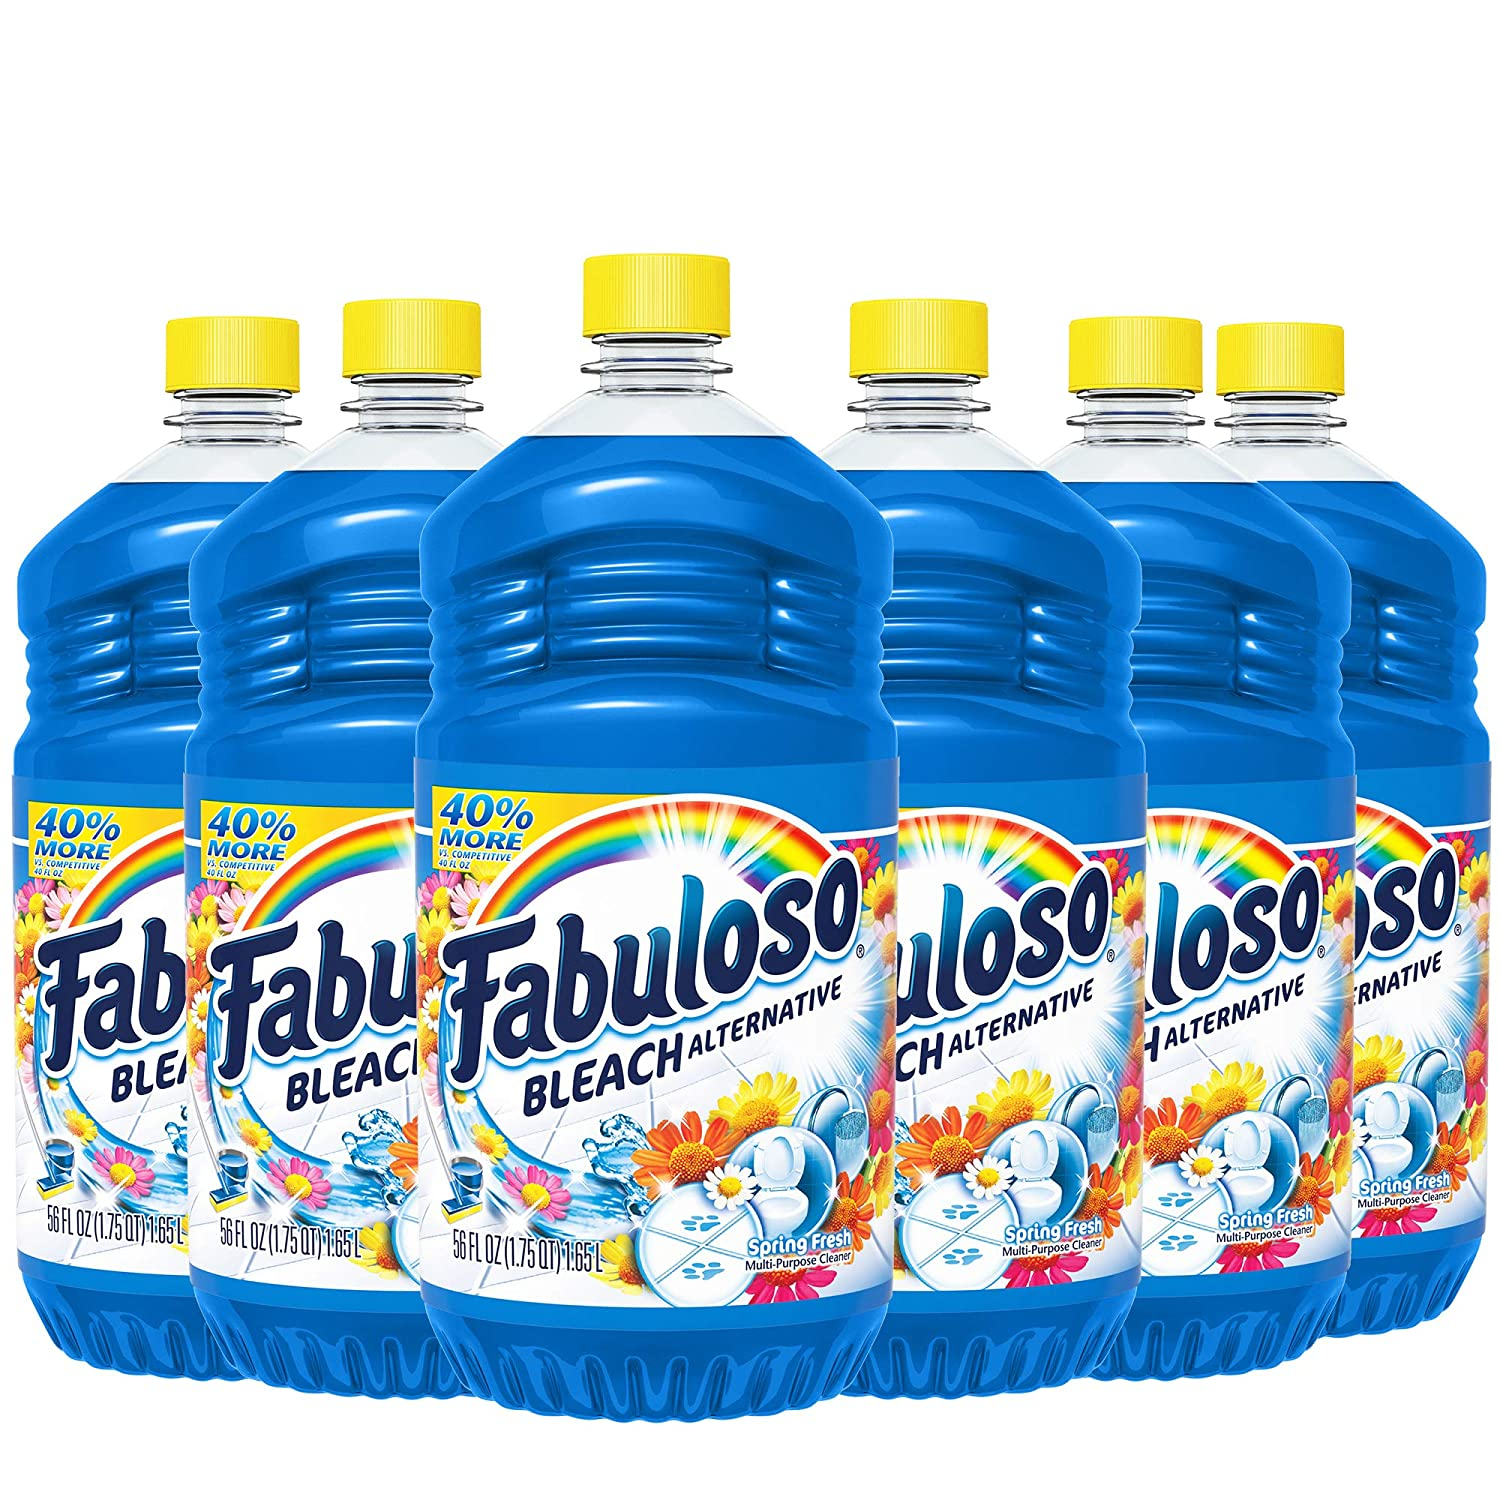 FABULOSO All-Purpose Cleaner with Bleach Alternative, Spring Fresh, Bathroom Cleaner, Toilet Cleaner, Floor Cleaner, Shower and Glass Cleaner, Mop Cleanser, 56 Fluid Ounce (Case of 6 Bottles) (153099)